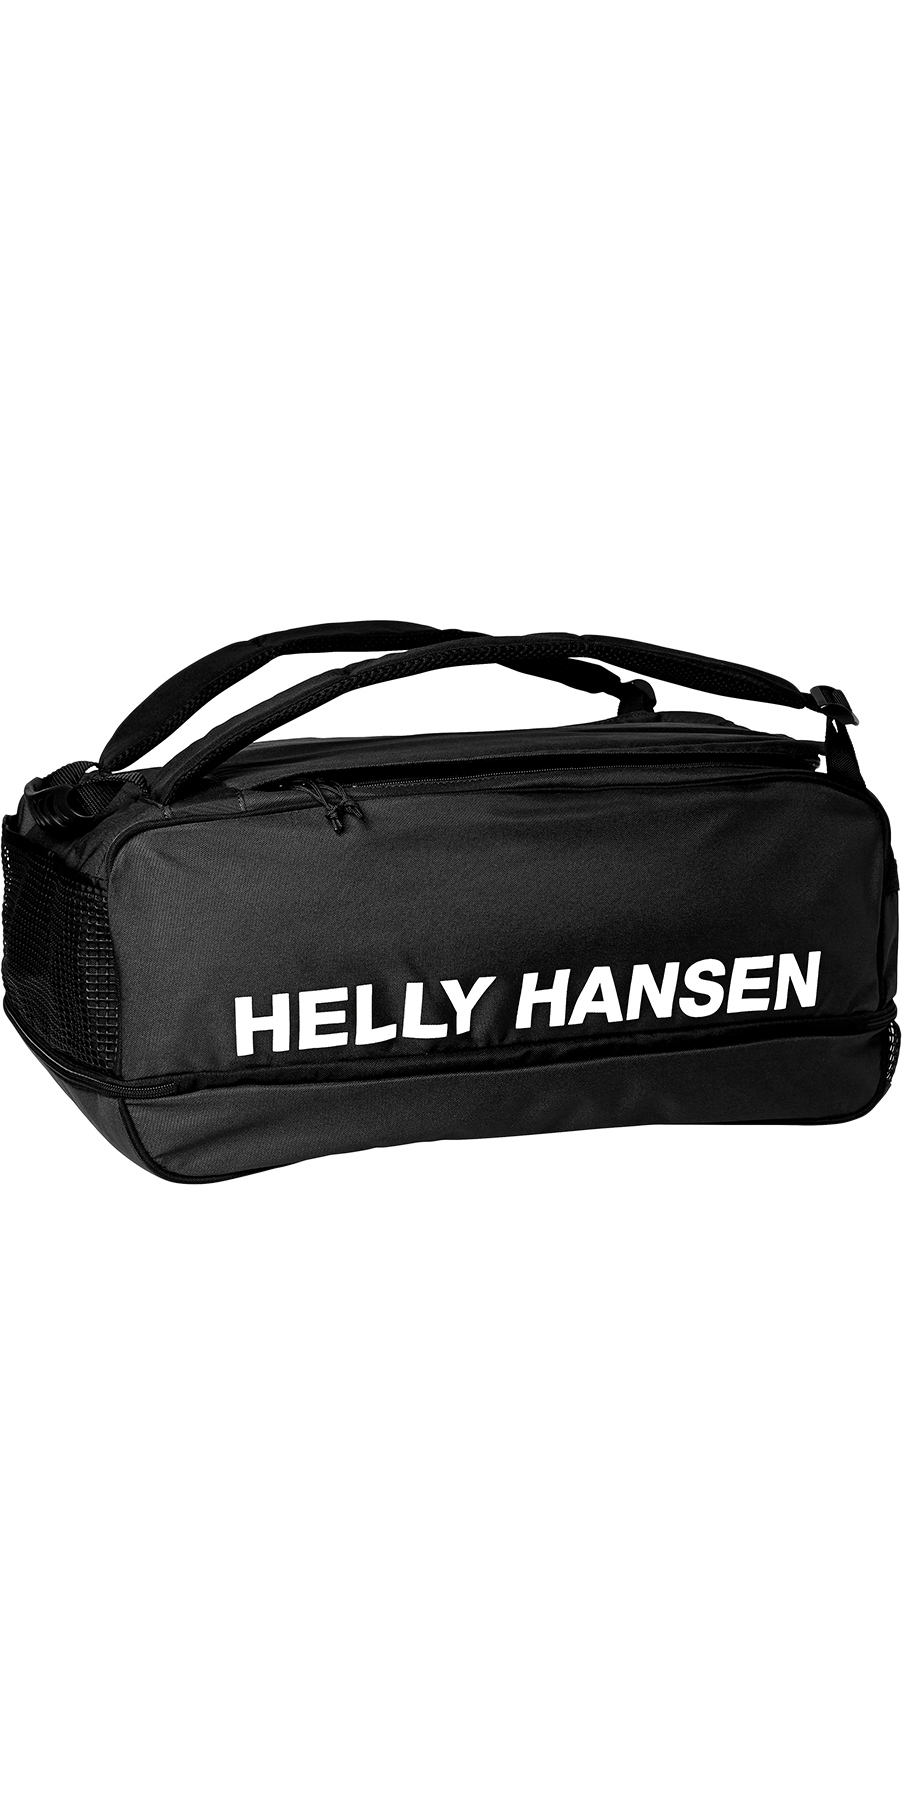 7ecb7b35417 Helly Hansen Duffel Bag Sports Direct | Building Materials Bargain ...